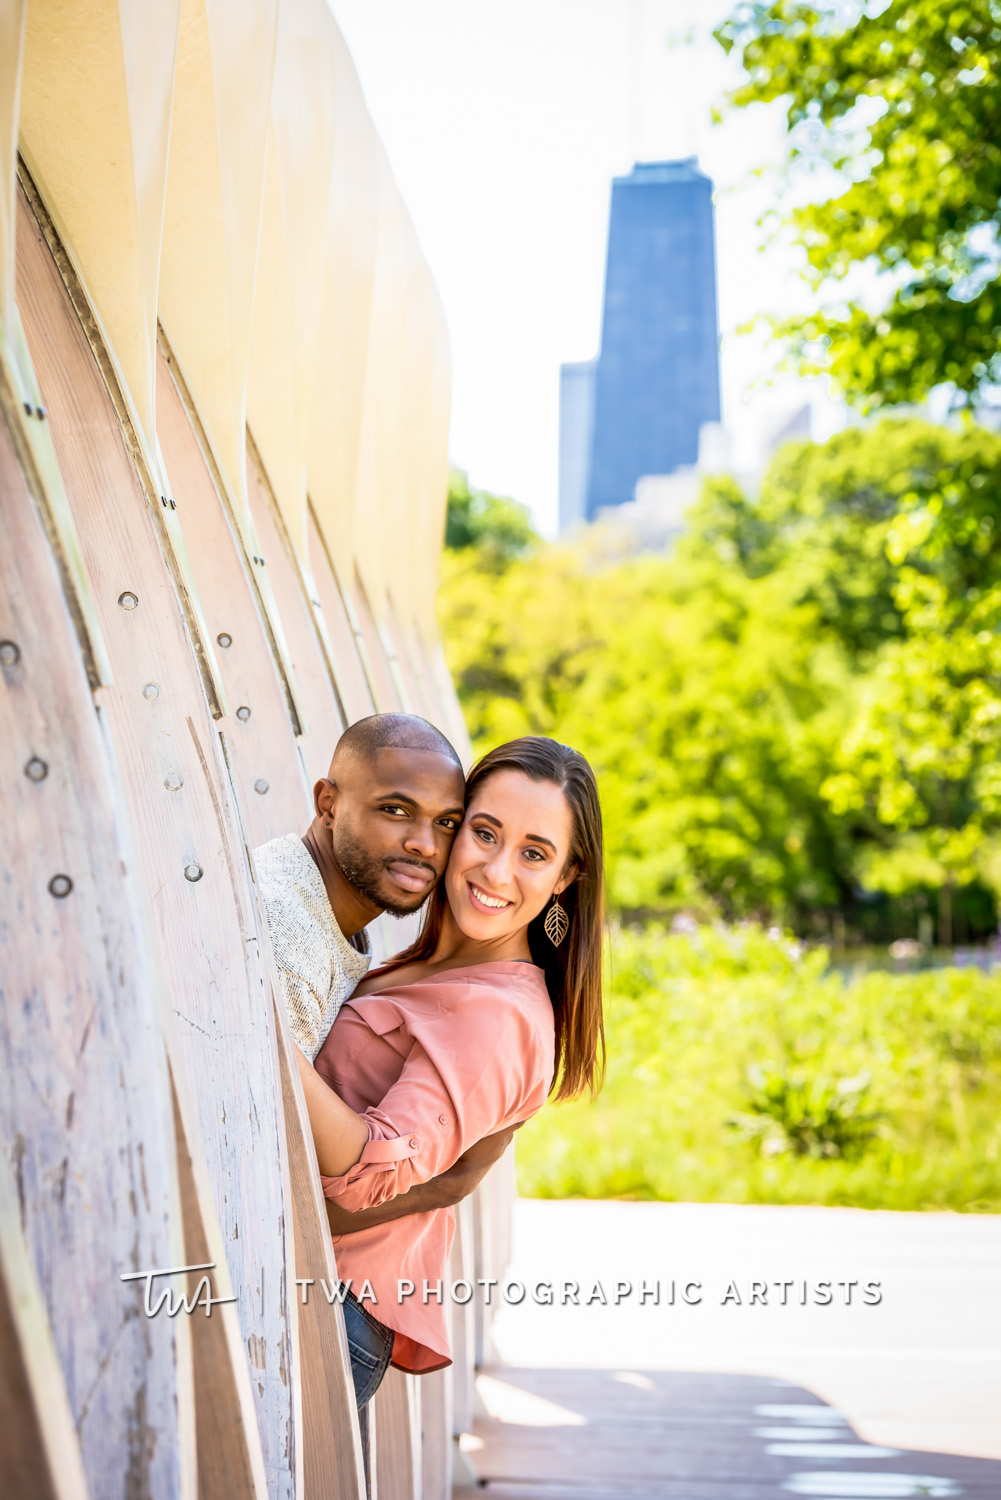 Emily & Ricky's Lincoln Park Engagement Session